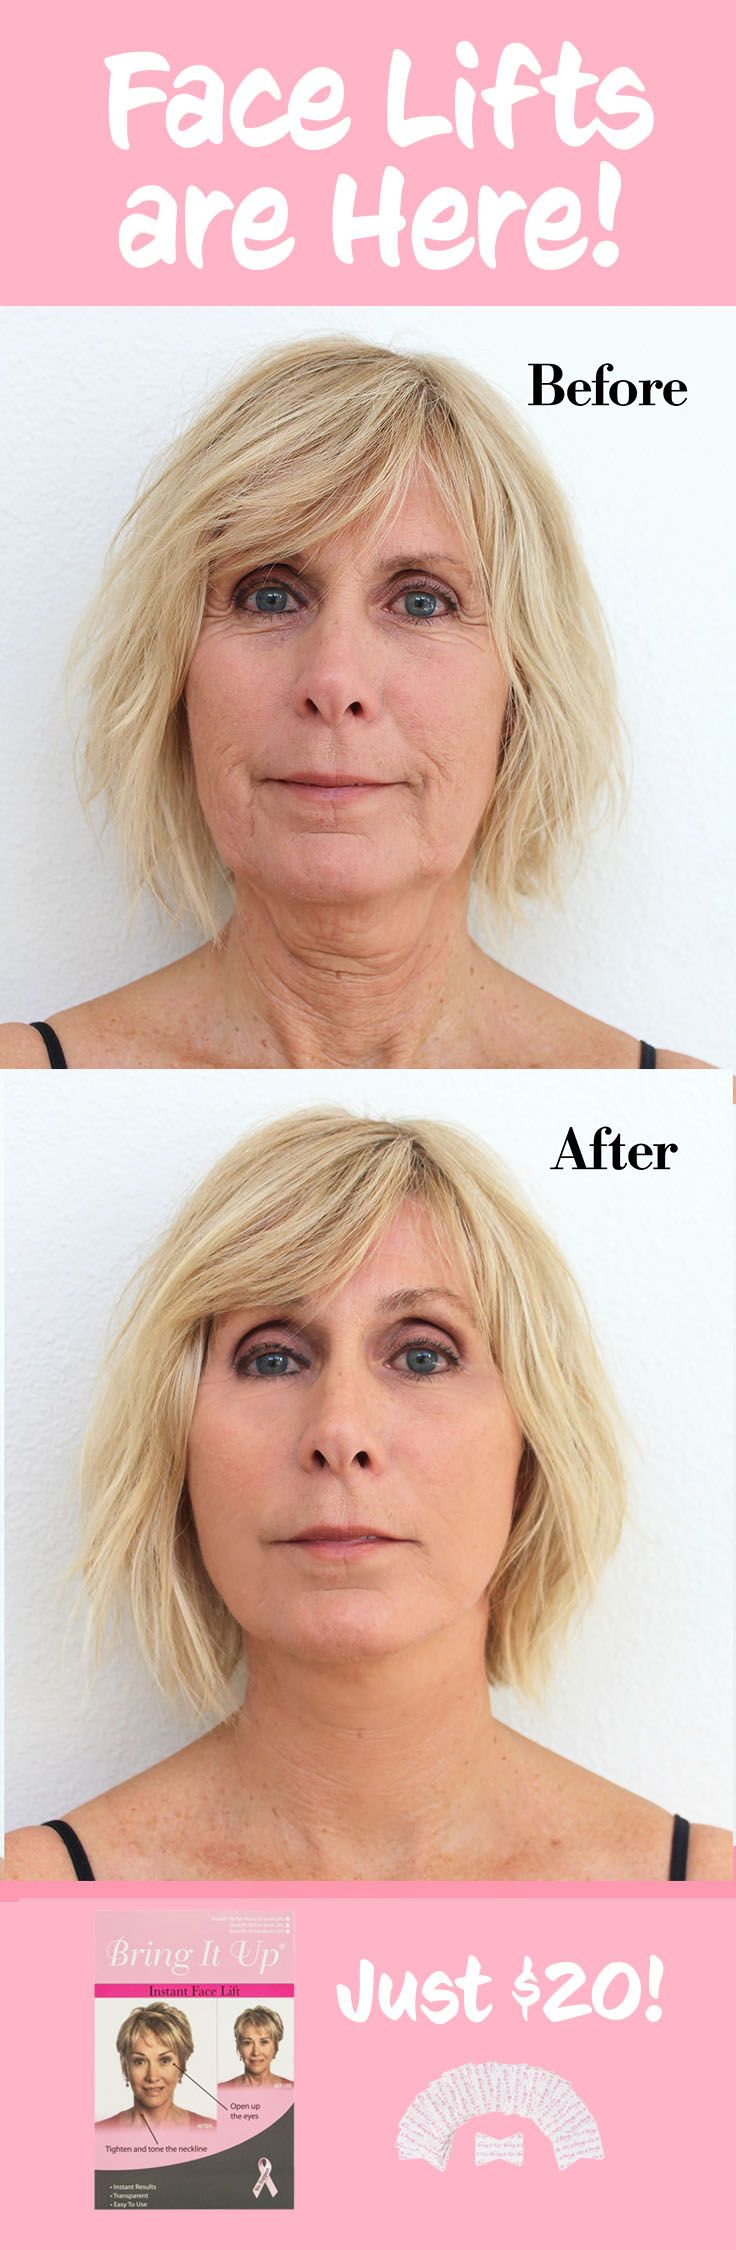 Face Lifts are here! Look younger instantly! Just peel, stick, and you're ready for the day. Love yourself and feel confident. Plus, they're just $20 for 8 sets of neck and brow lifts!  Face Lifts | Non surgical face lift | before and after face lift | Anti wrinkle remedy | anti aging remedy